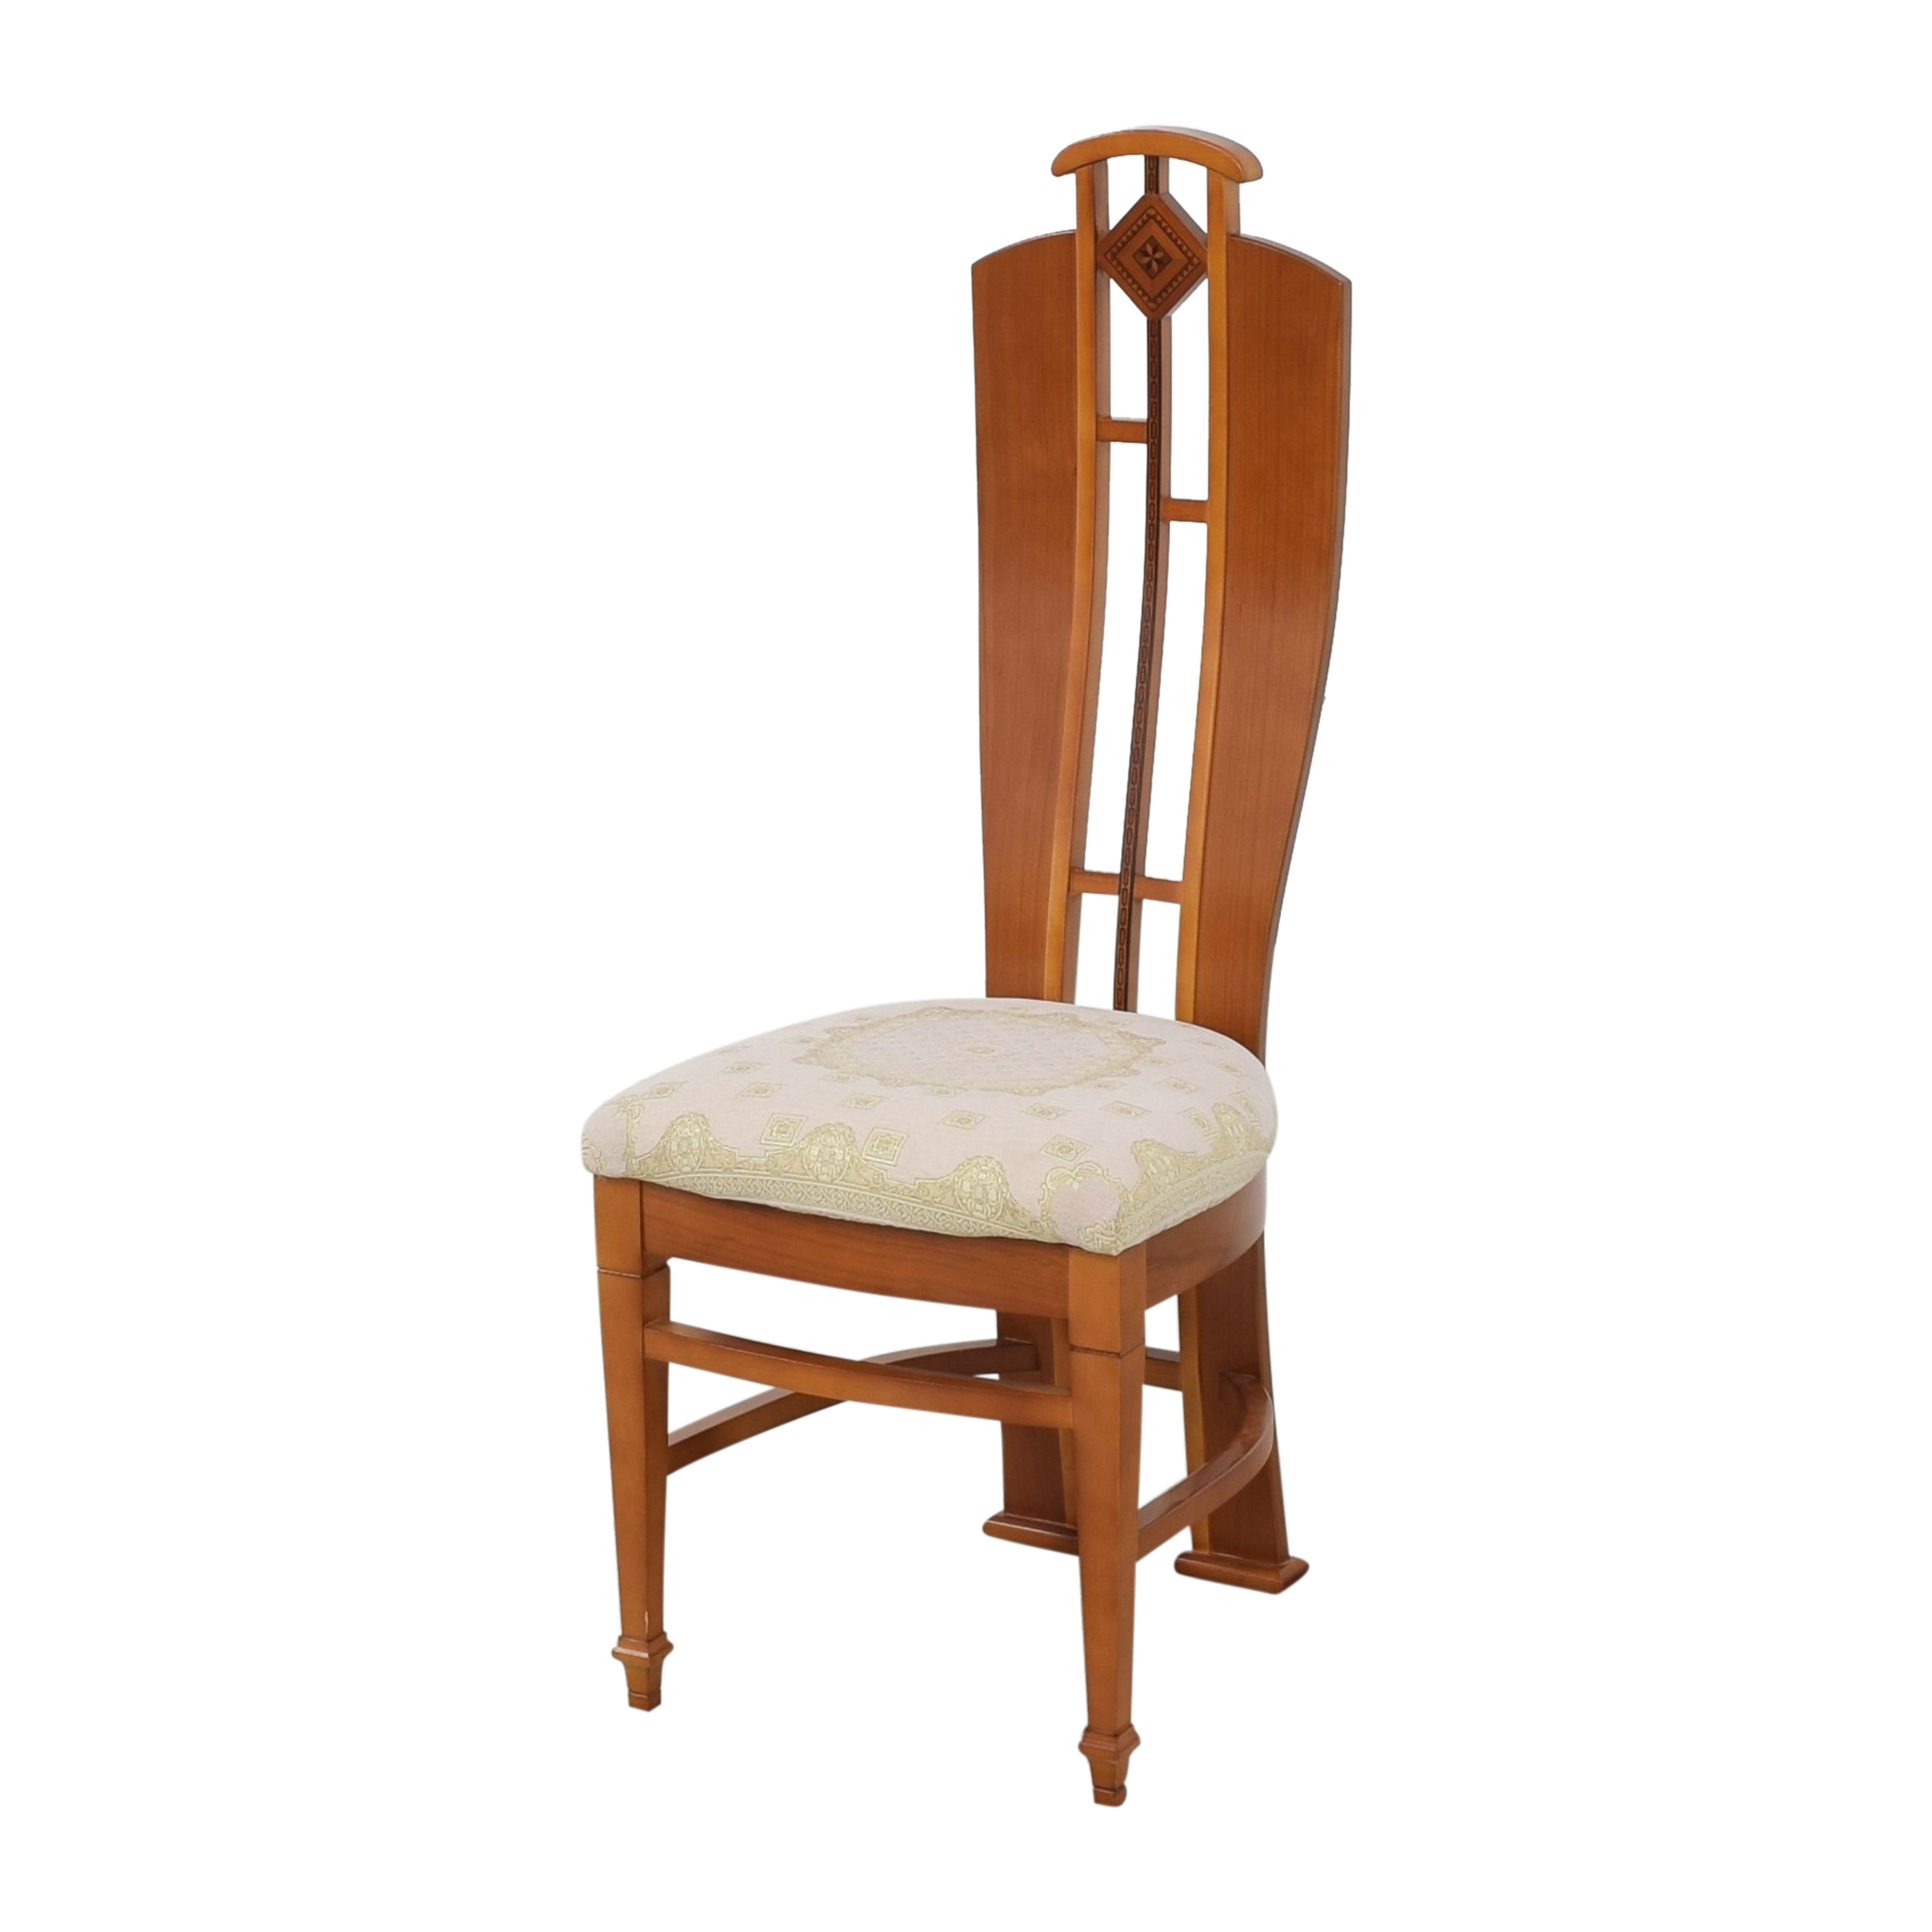 World Of Decor Dining Chairs for sale